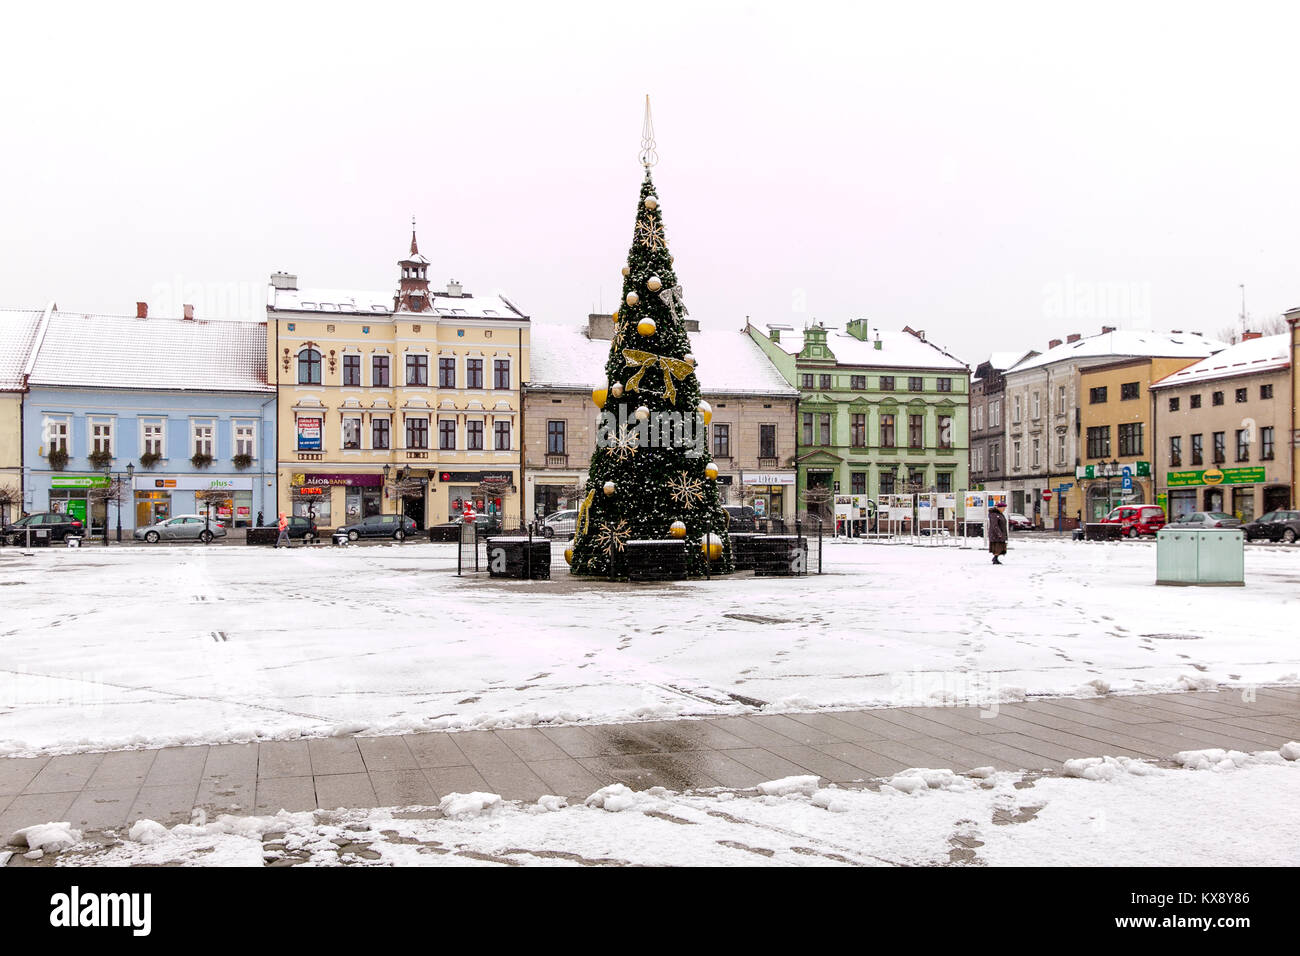 Christmas Tree In Historic Stock Photos & Christmas Tree In Historic ...